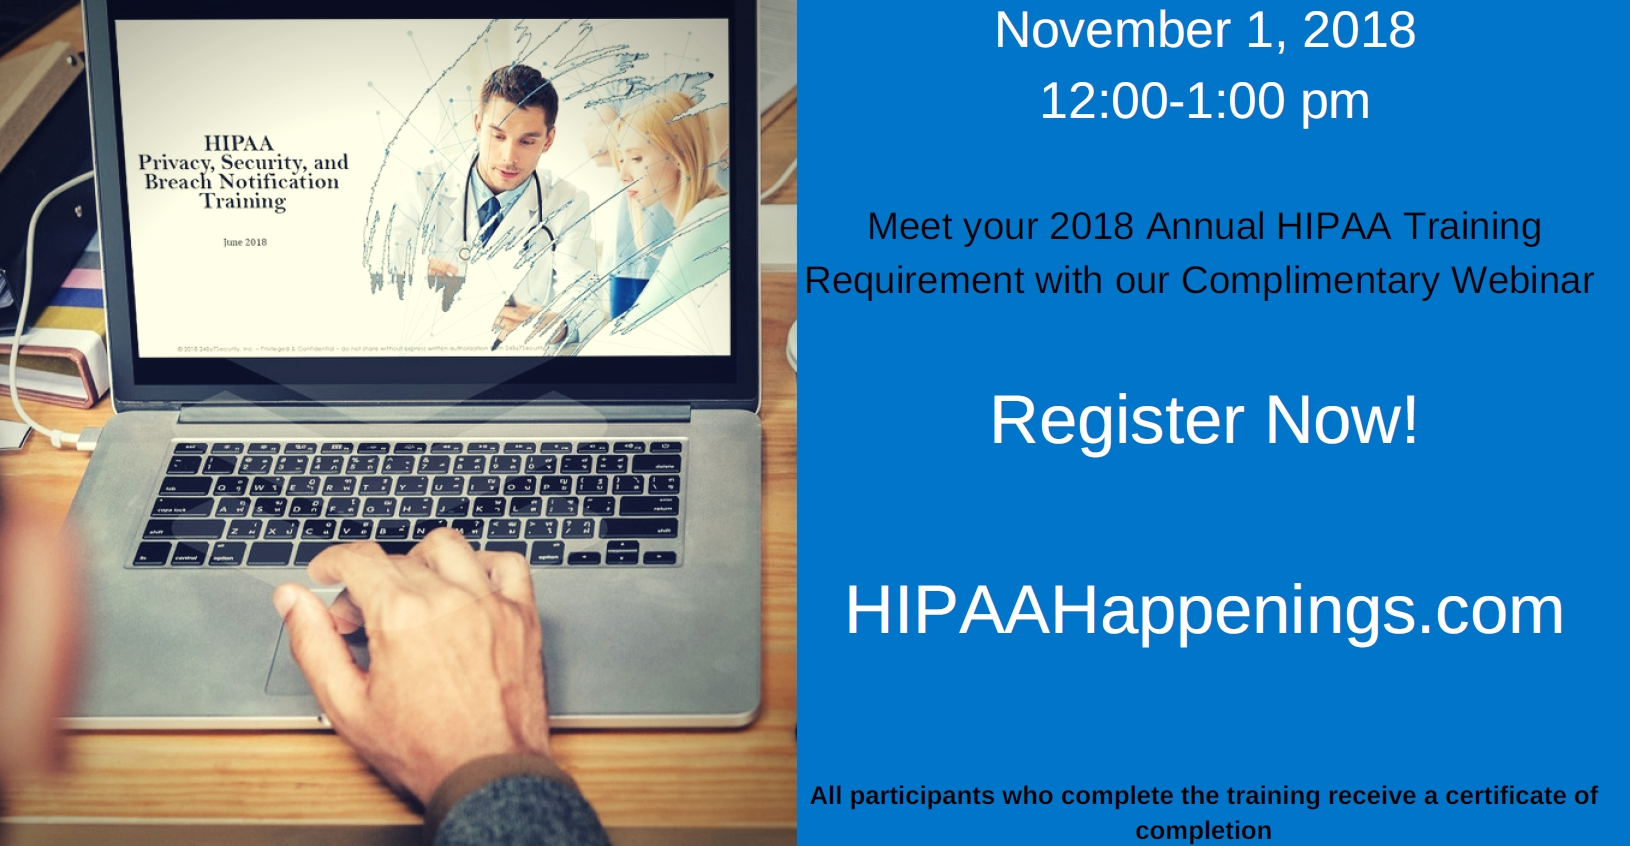 HIPAAHappenings event